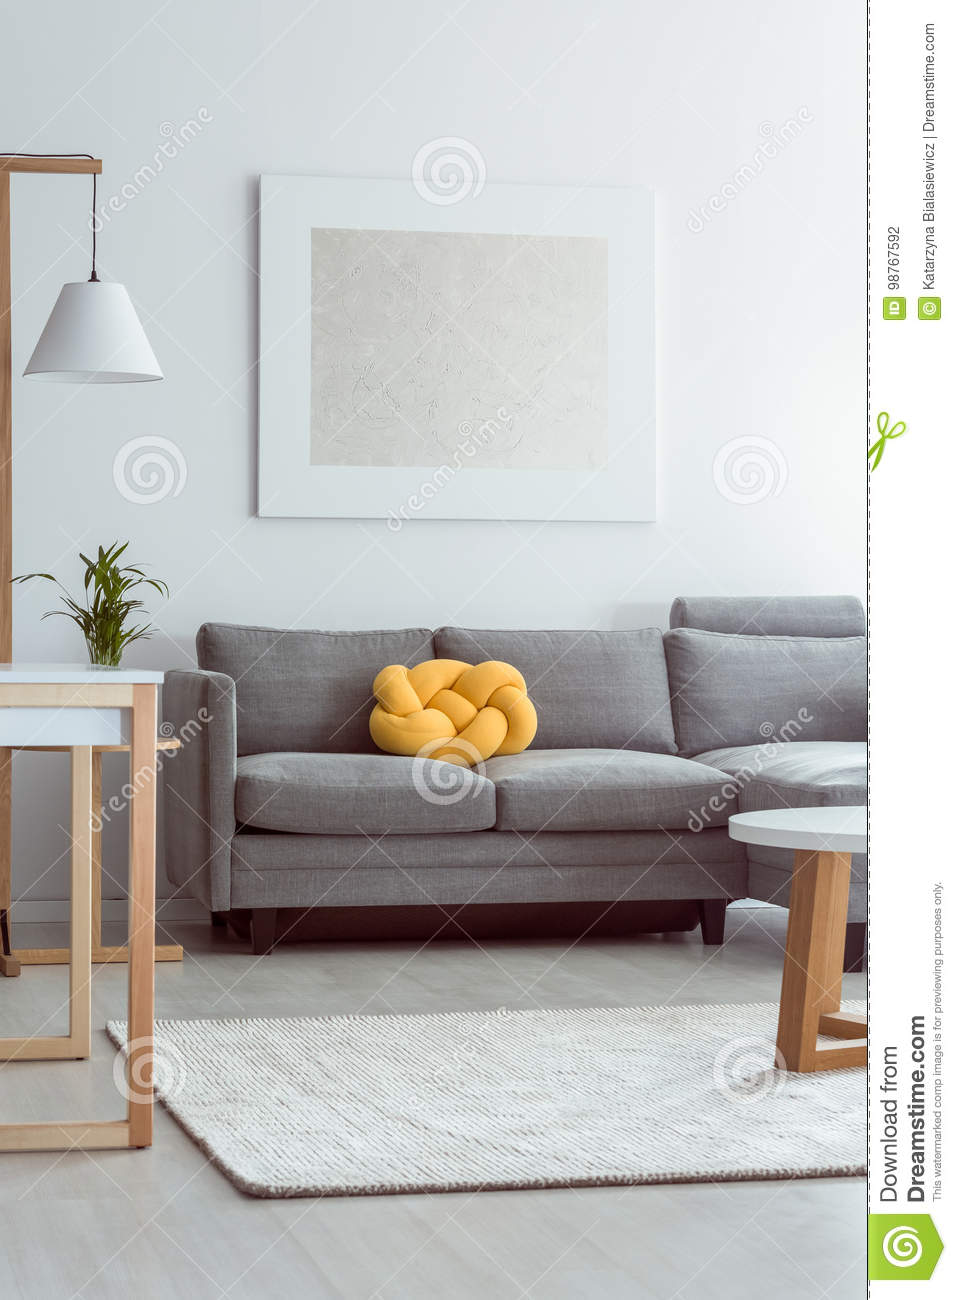 Sofa in cozy living room stock photo. Image of living - 98767592